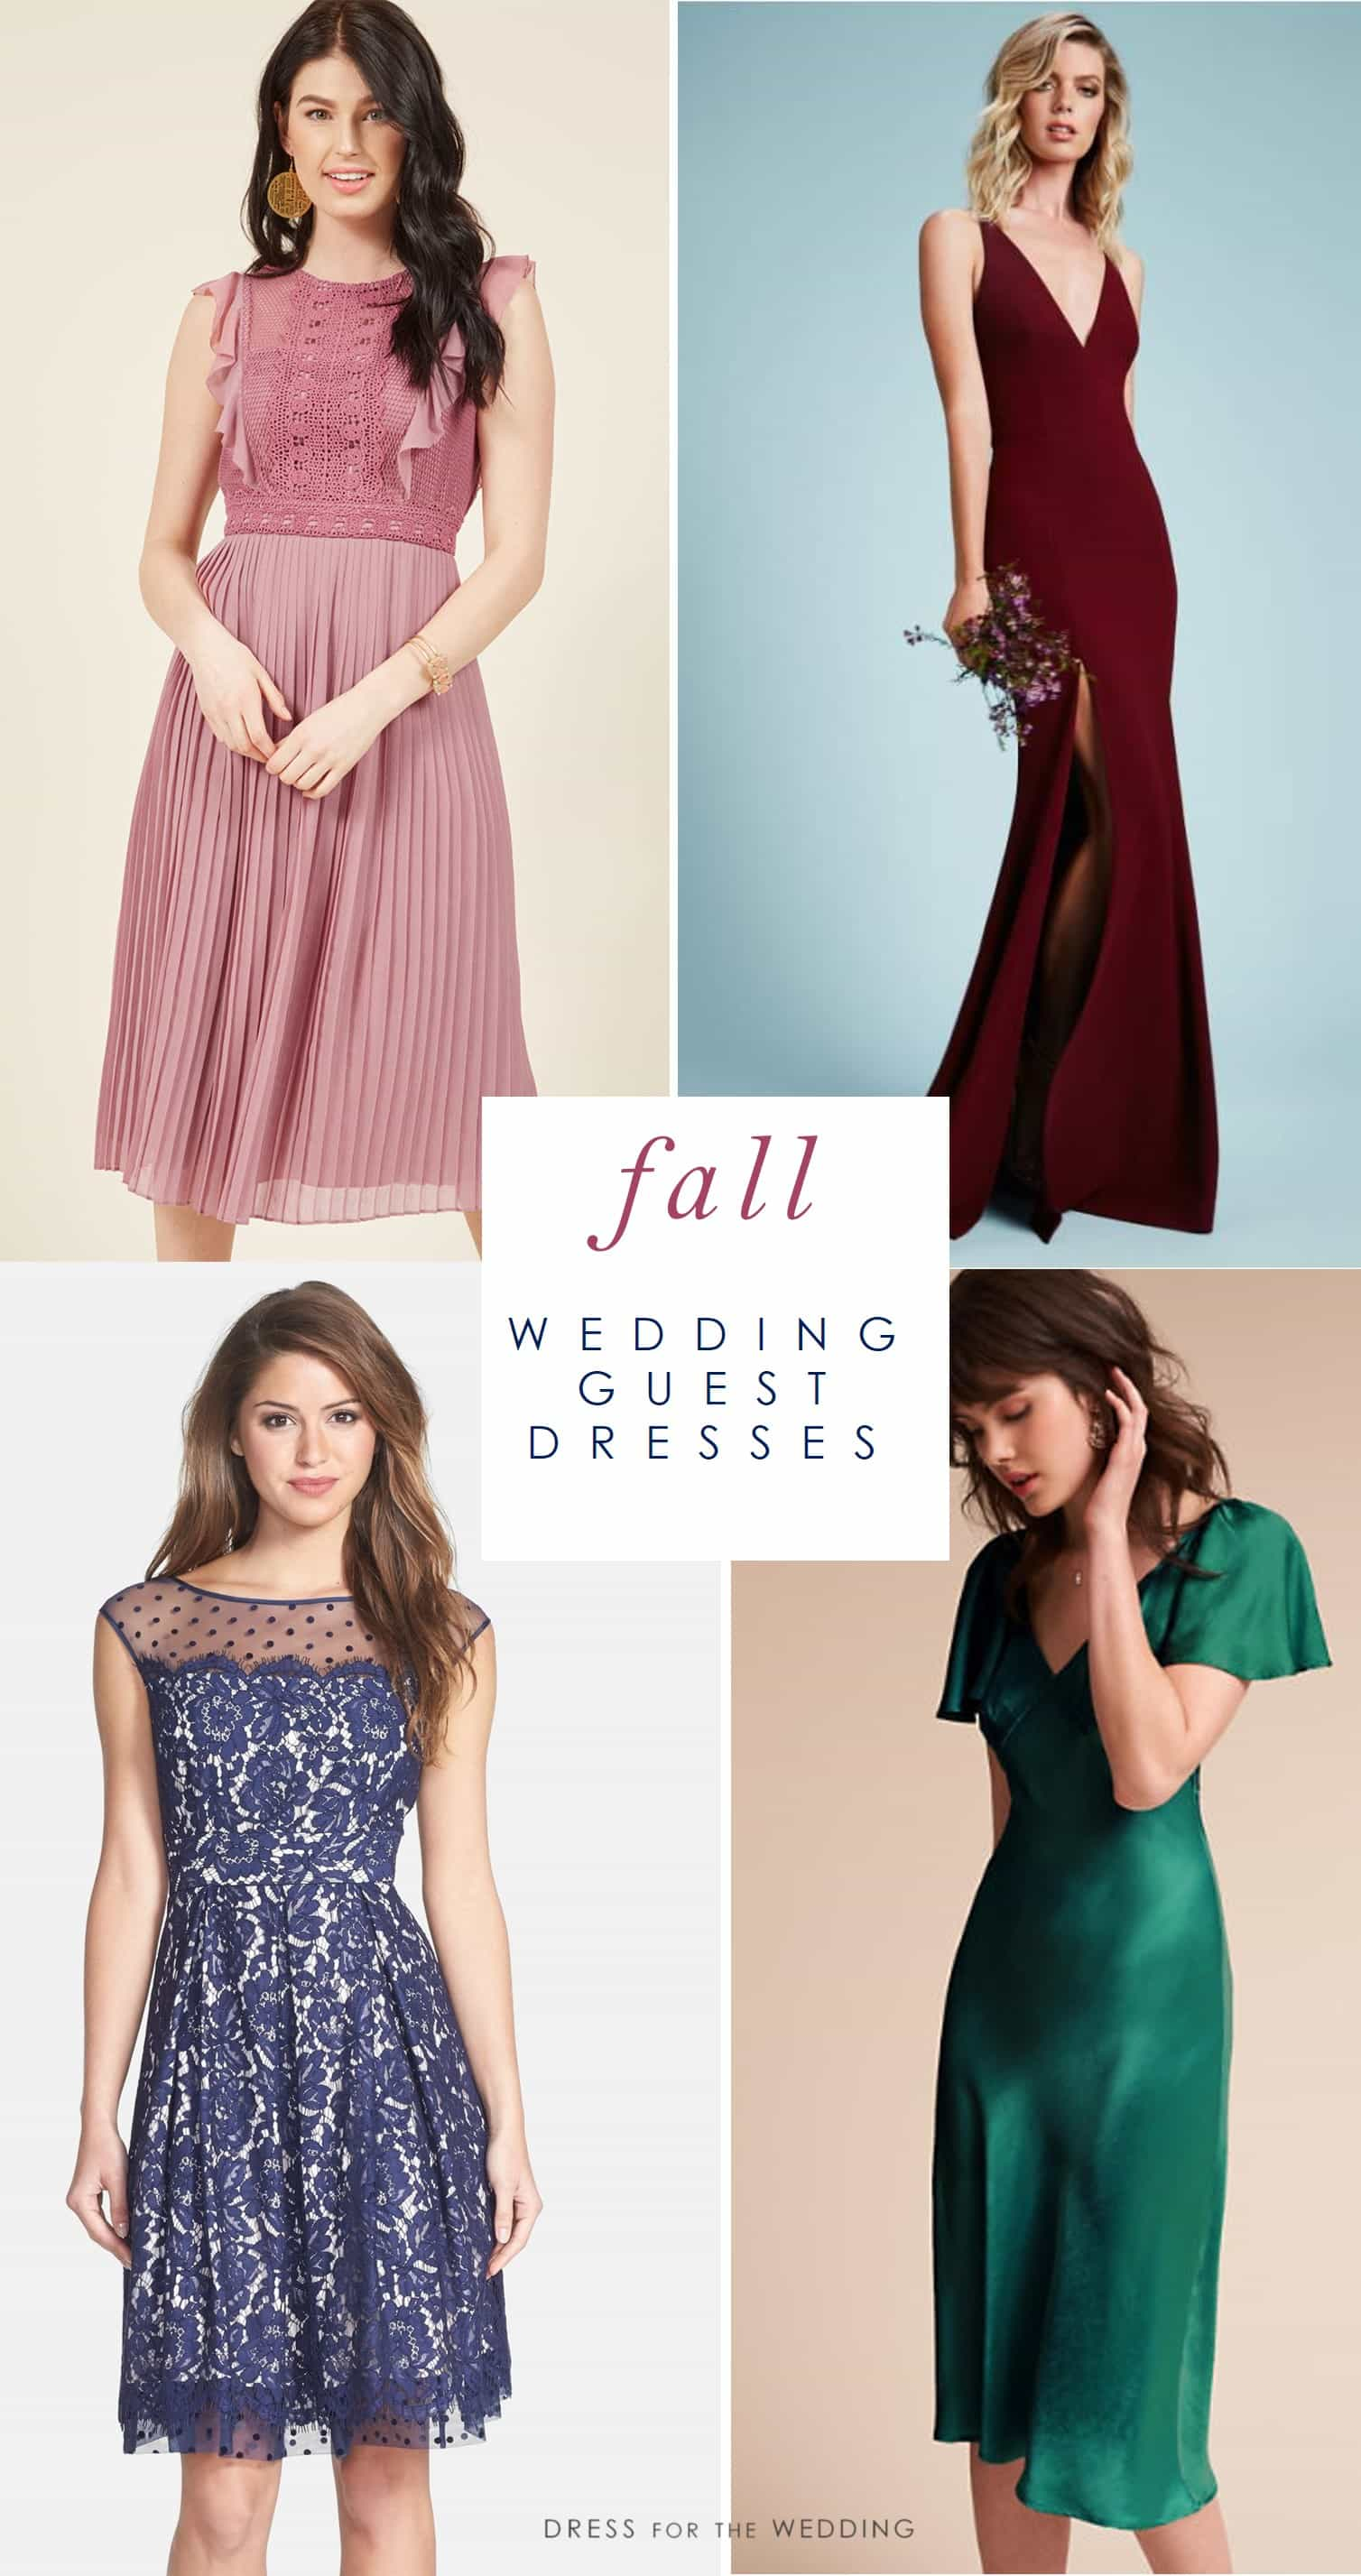 Fall wedding guest dresses what to wear to a fall wedding ombrellifo Choice Image